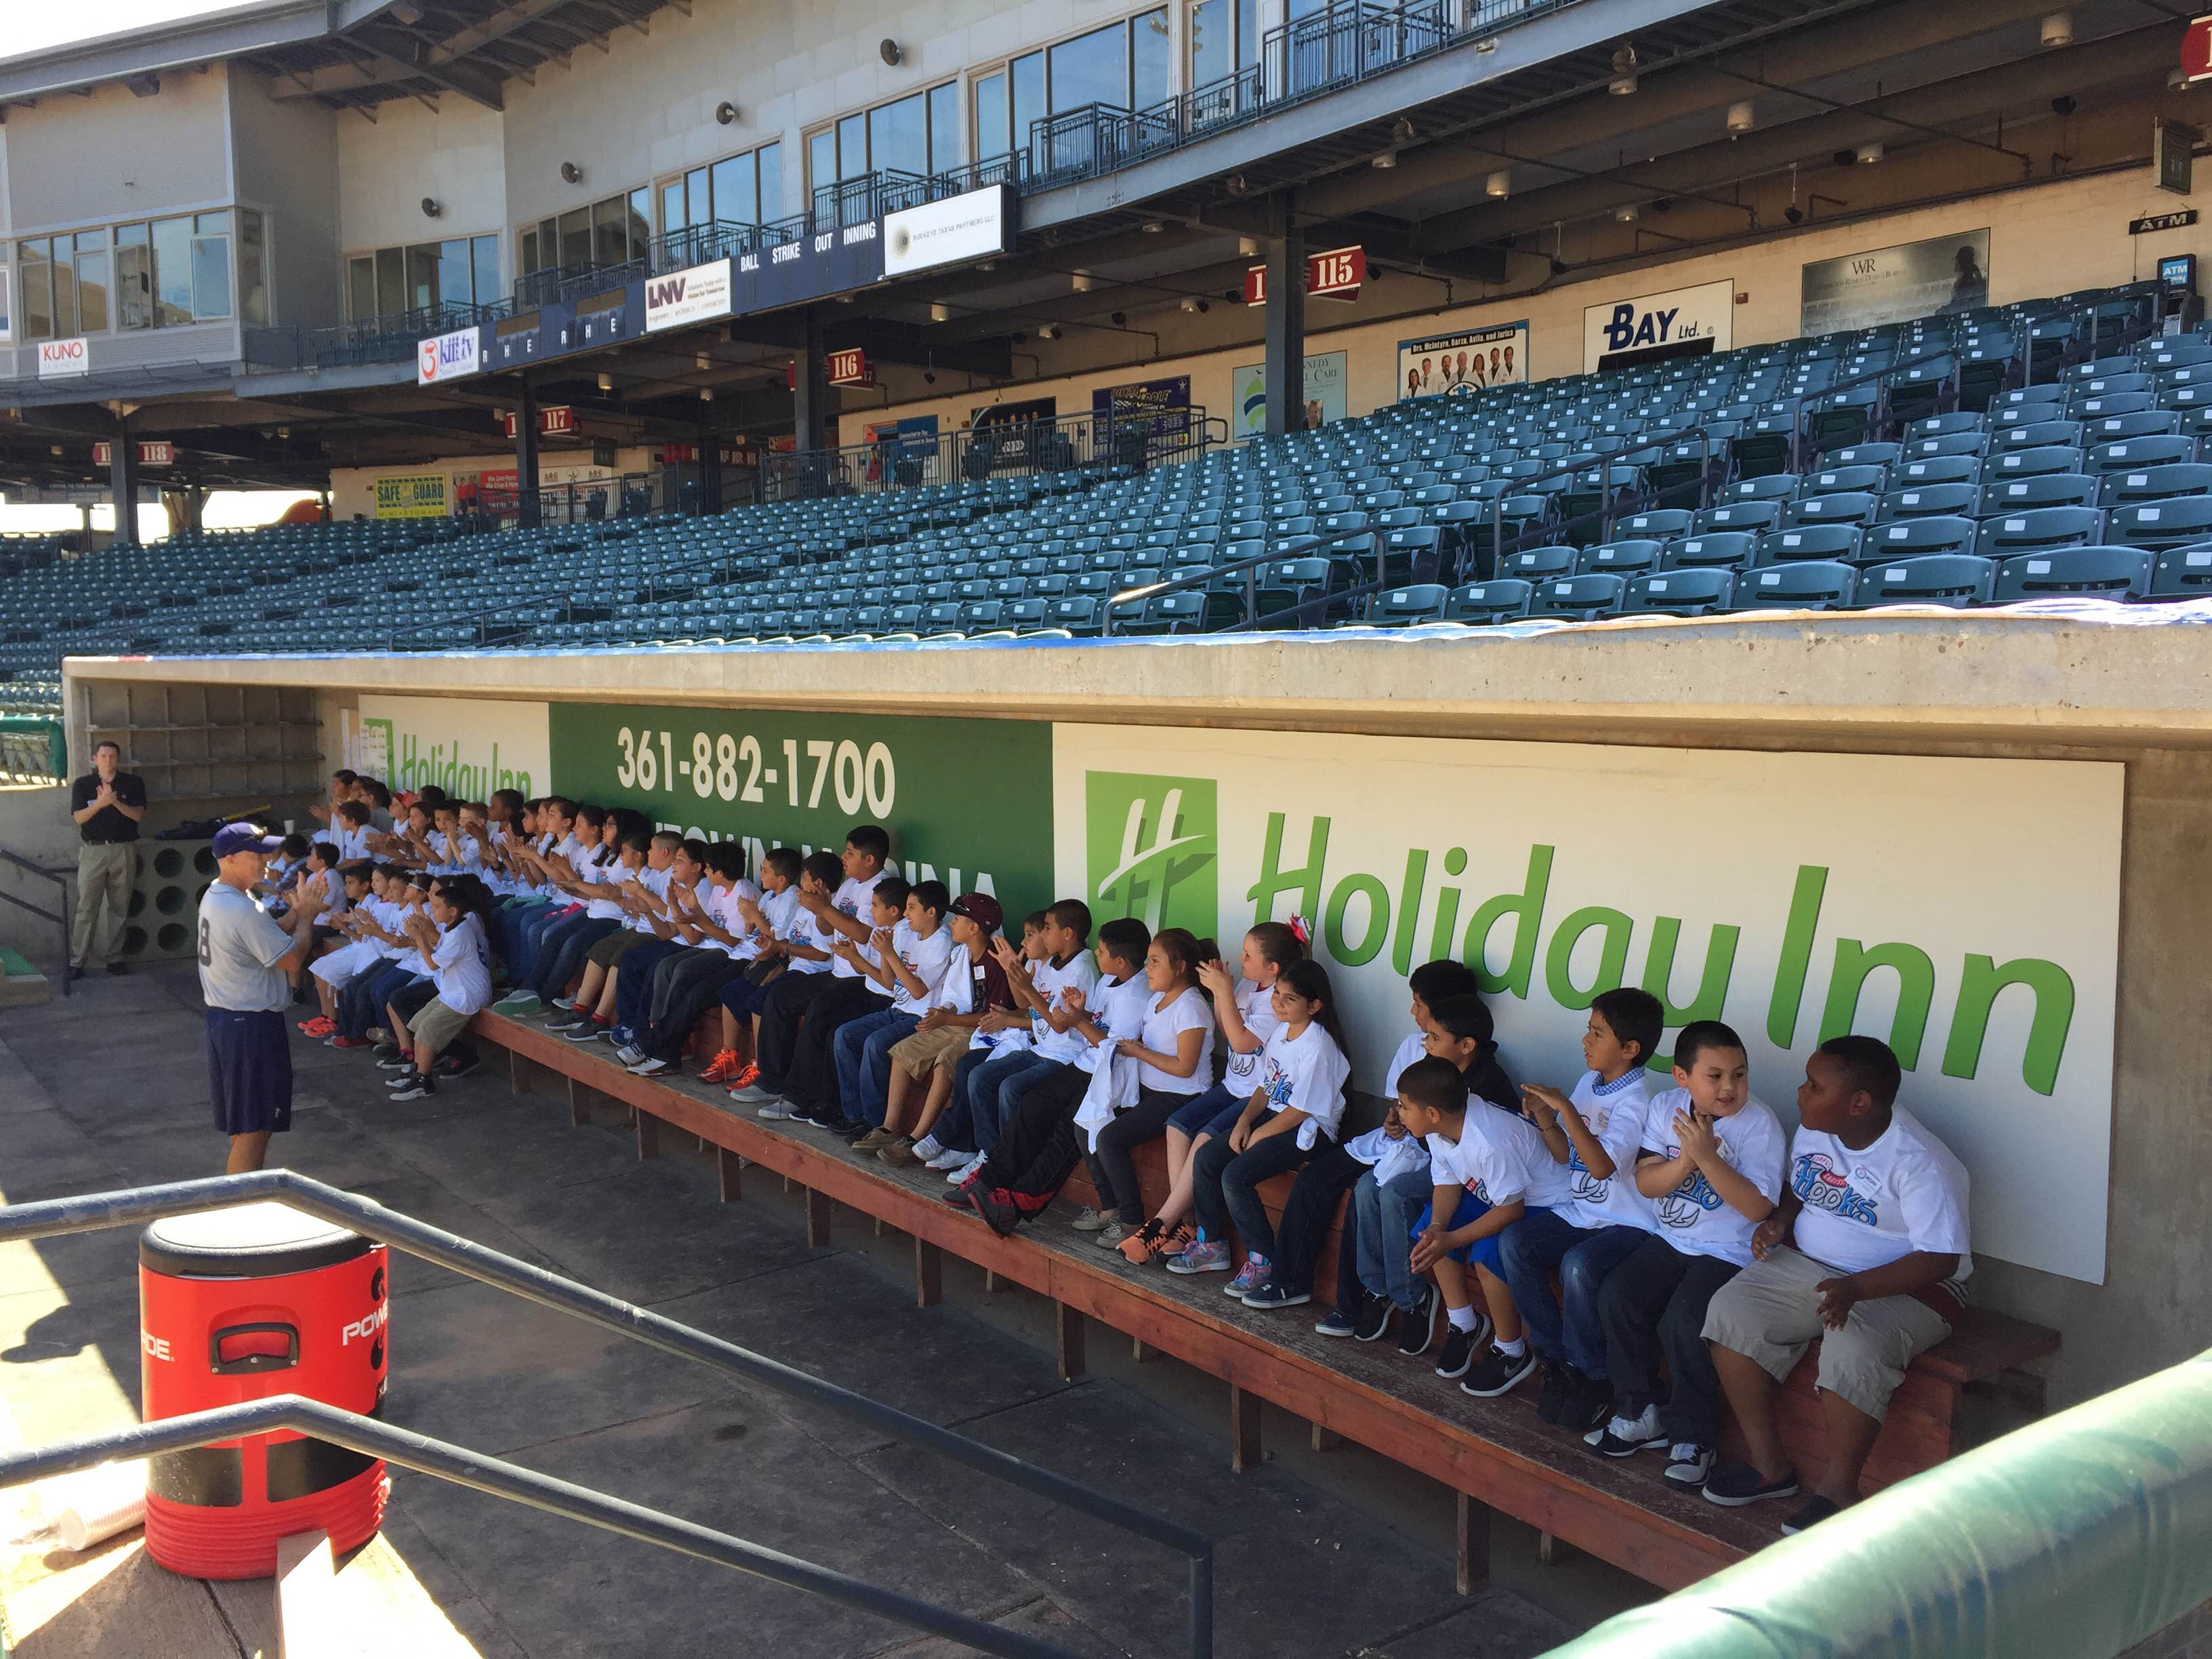 West Oso Elementary at Hooks Field